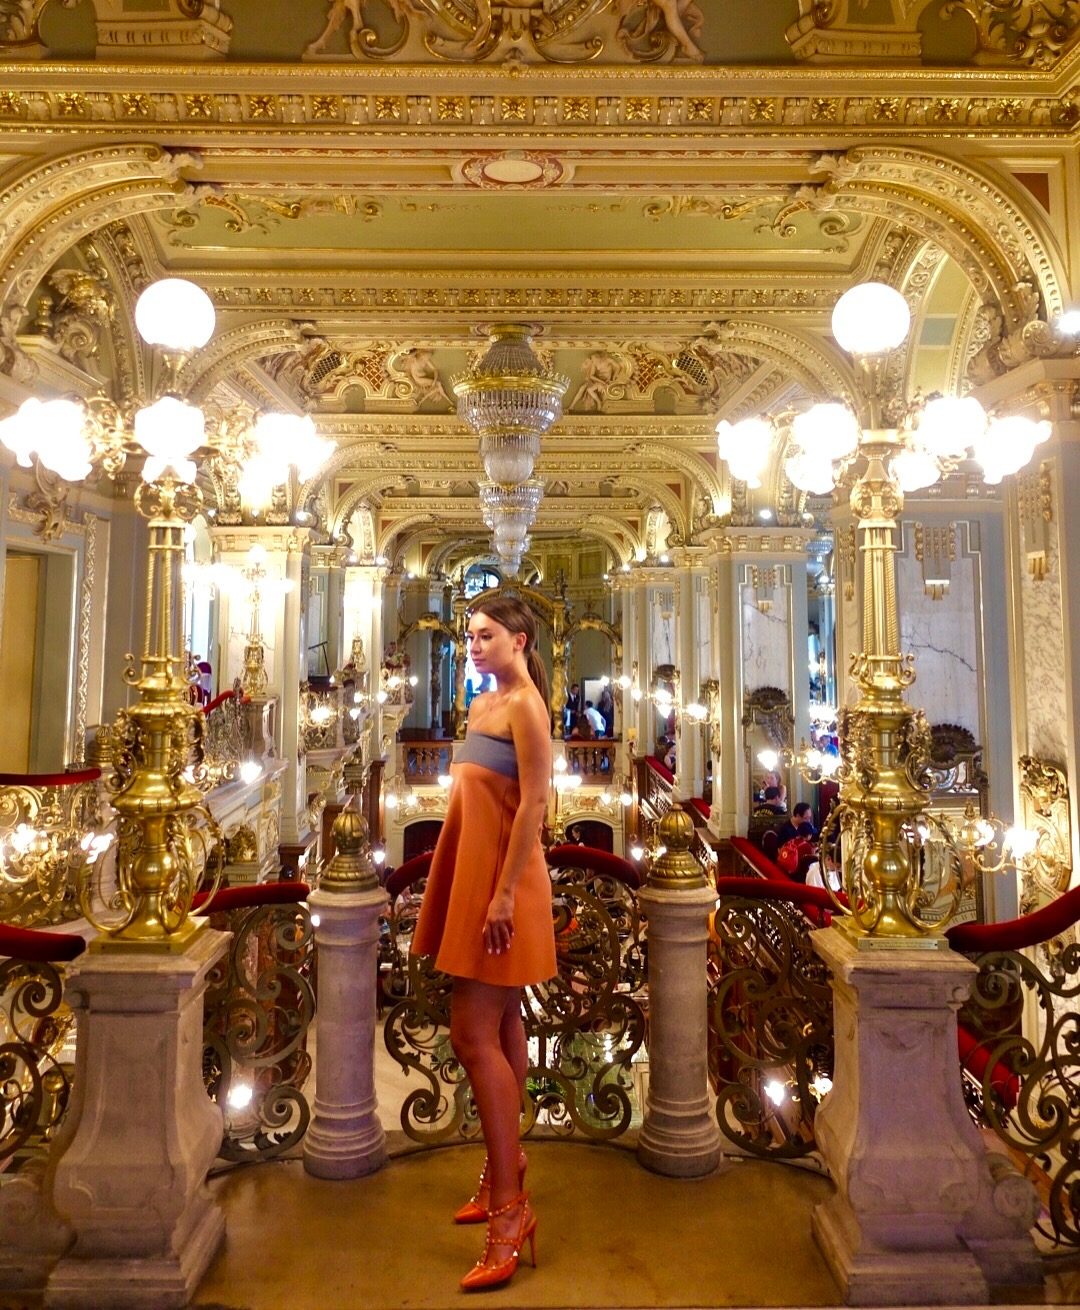 new-york-cafe-budapest-lustforthesublime